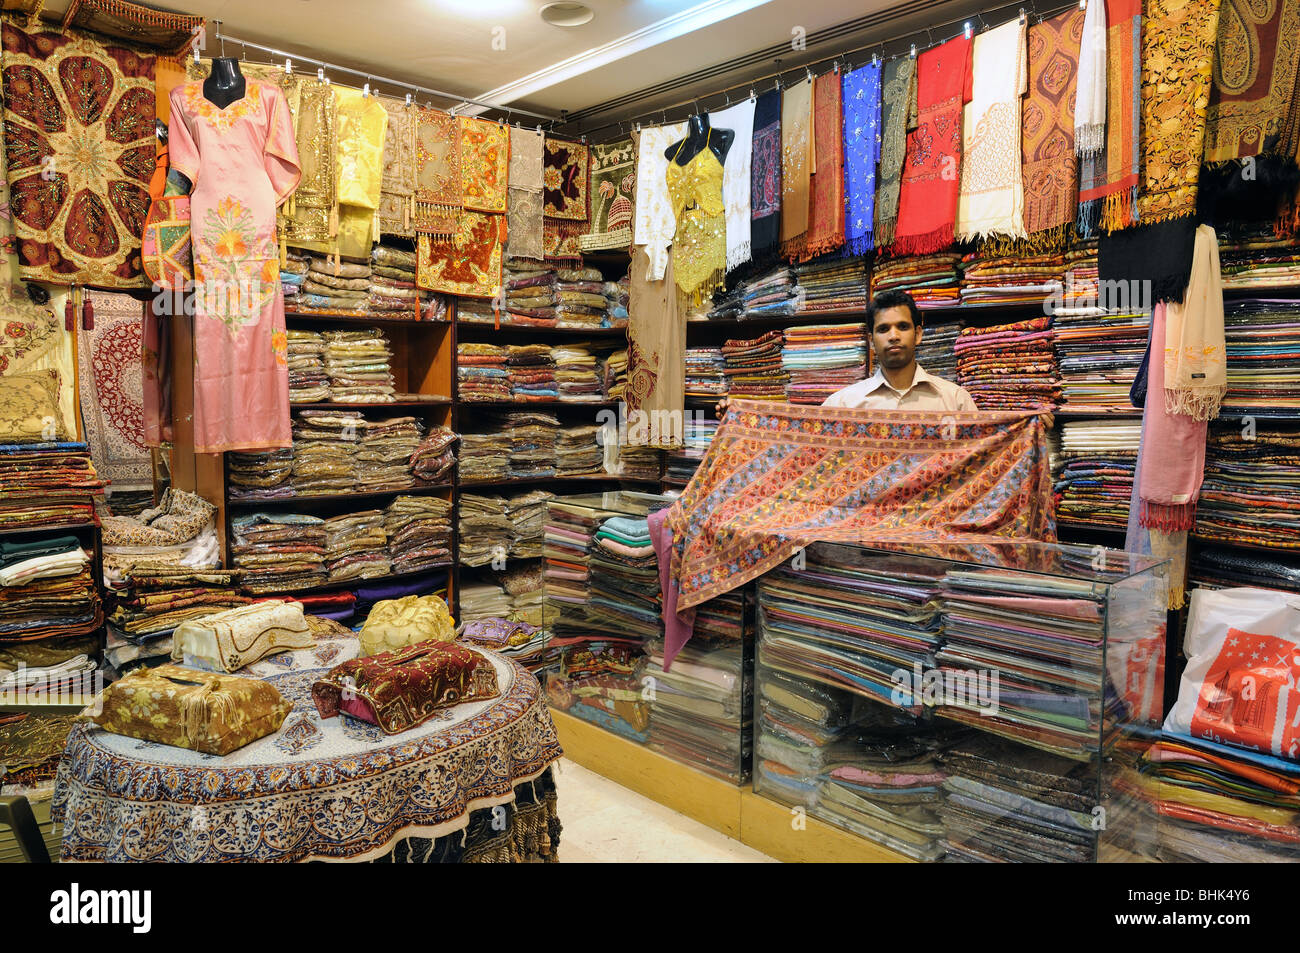 Salesman in his Shop. Sharjah Central Souq, United Arab Emirates - Stock Image